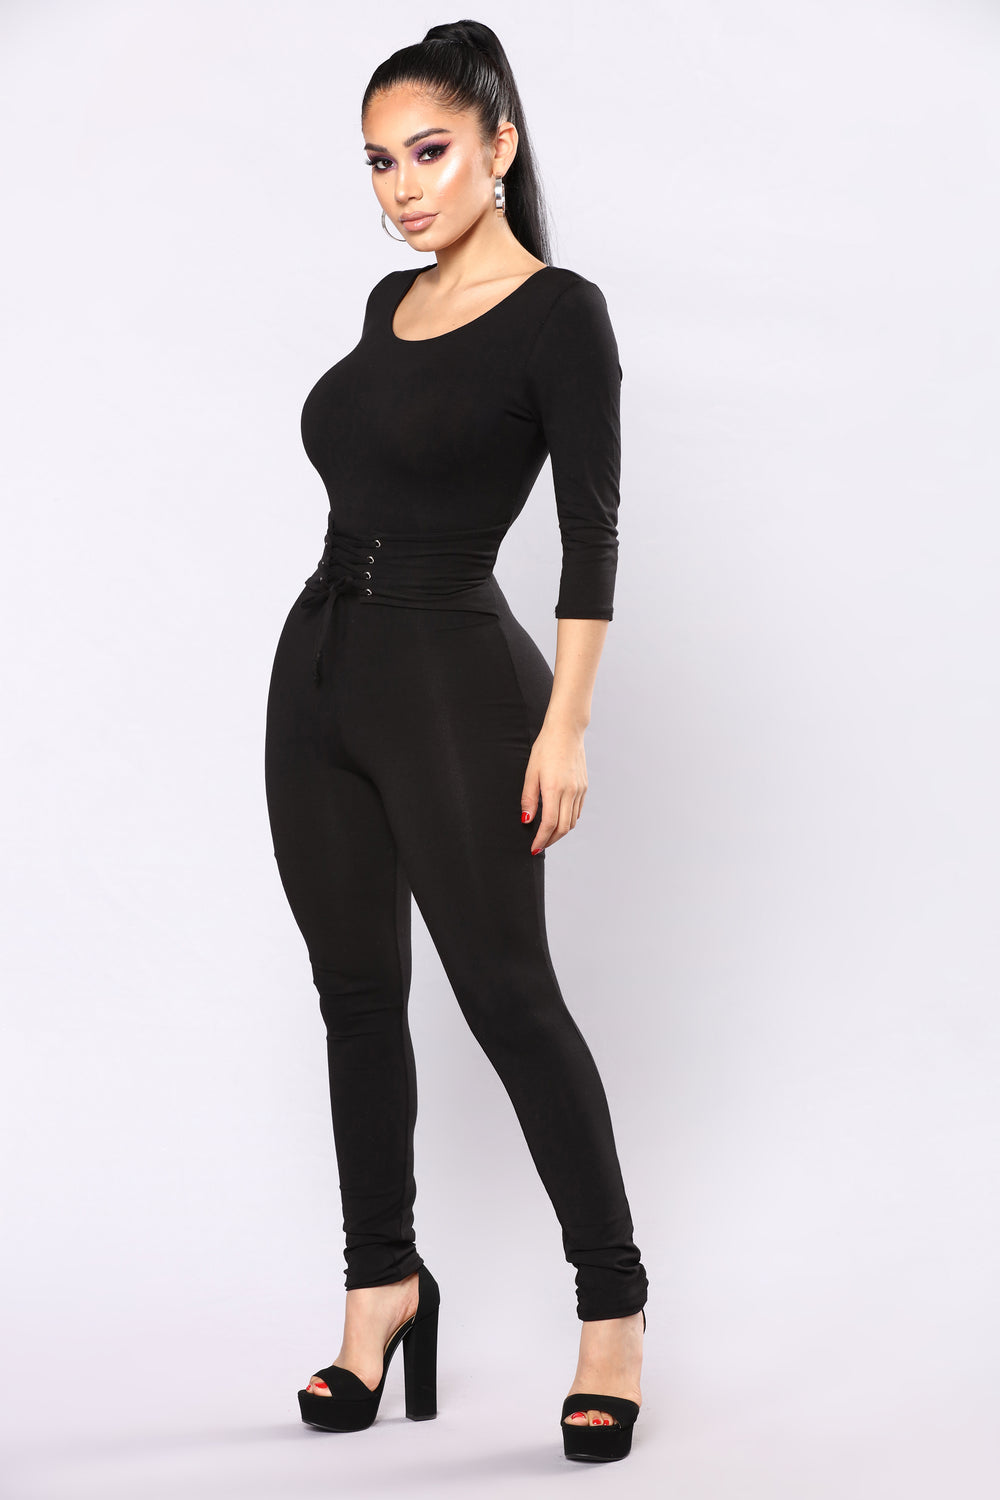 On The Bleachers Corset Jumpsuit - Black